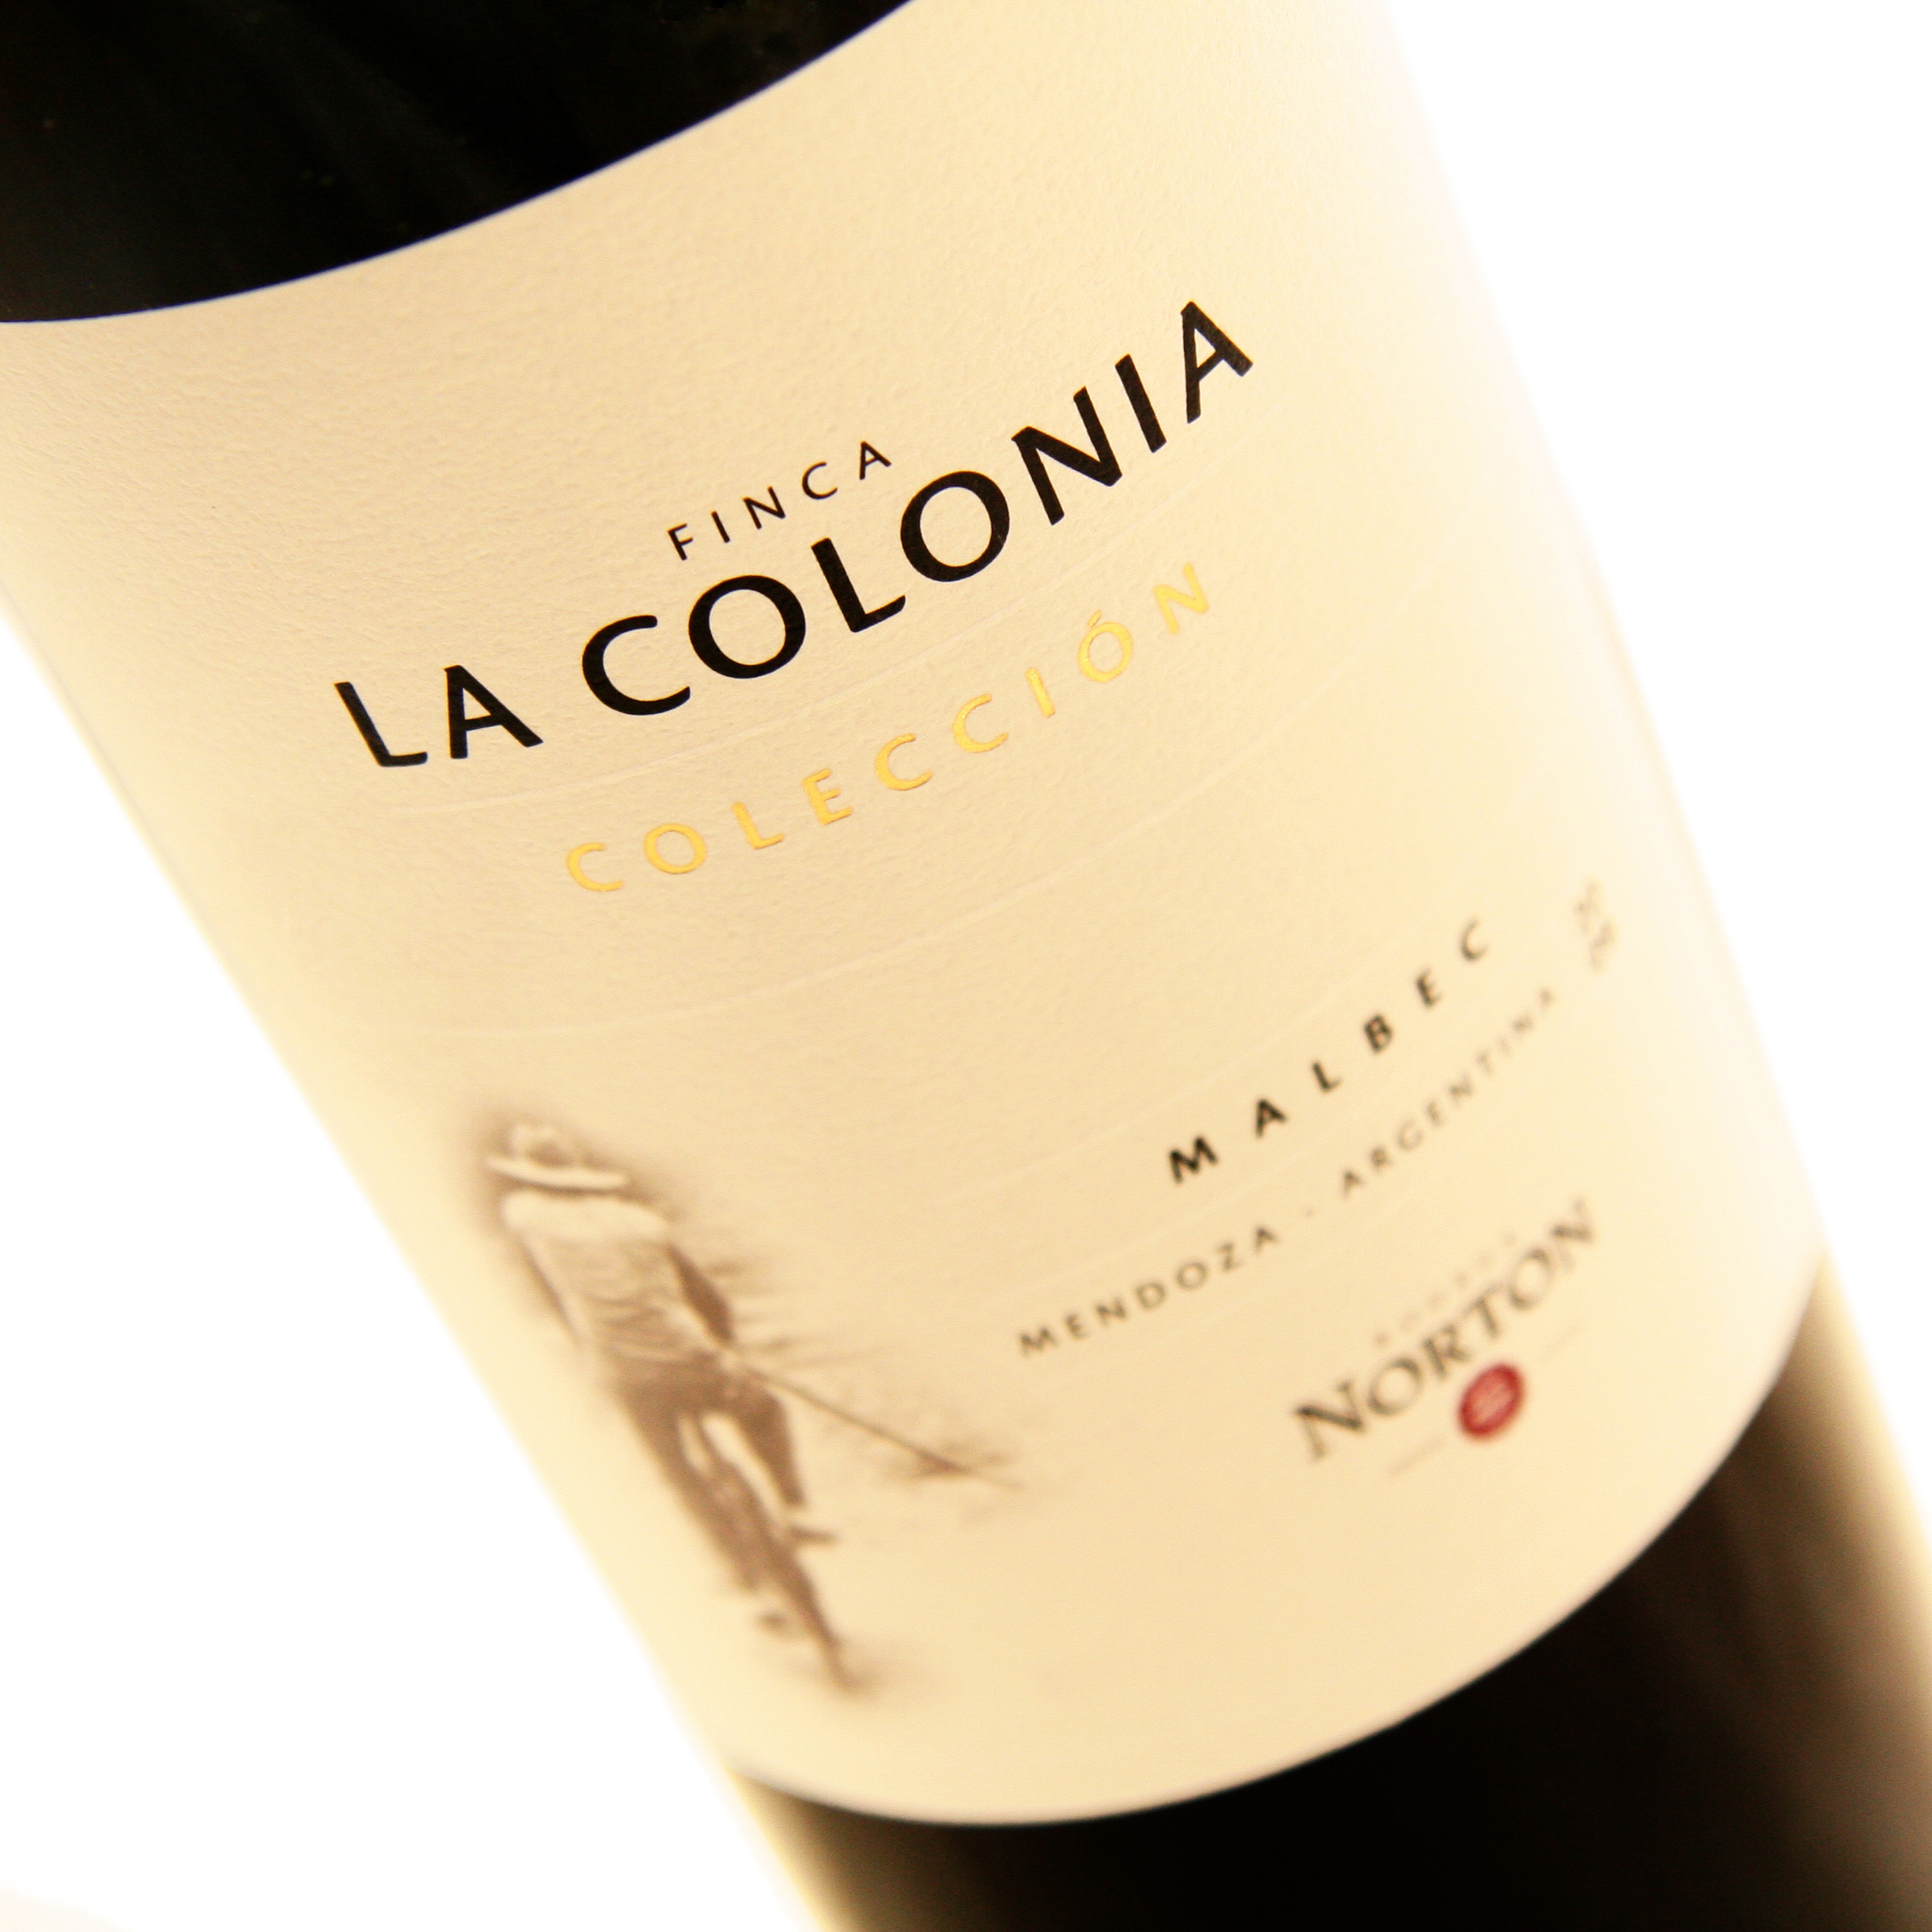 Bodega Norton - Finca La Colonia Coleccion Malbec 2019 6x 75cl Bottles